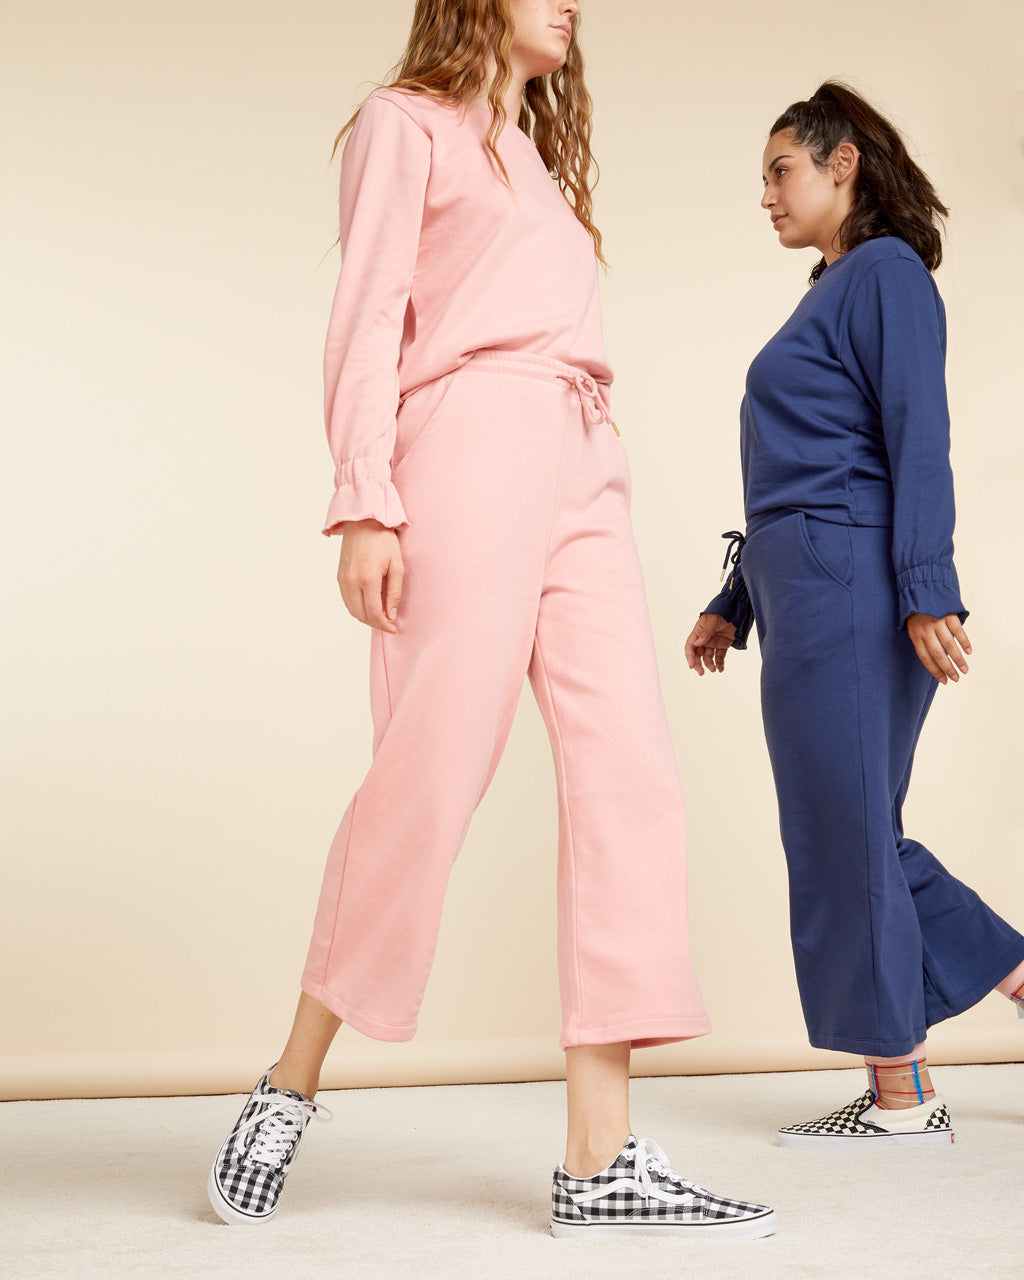 two women wearing sweatsuits